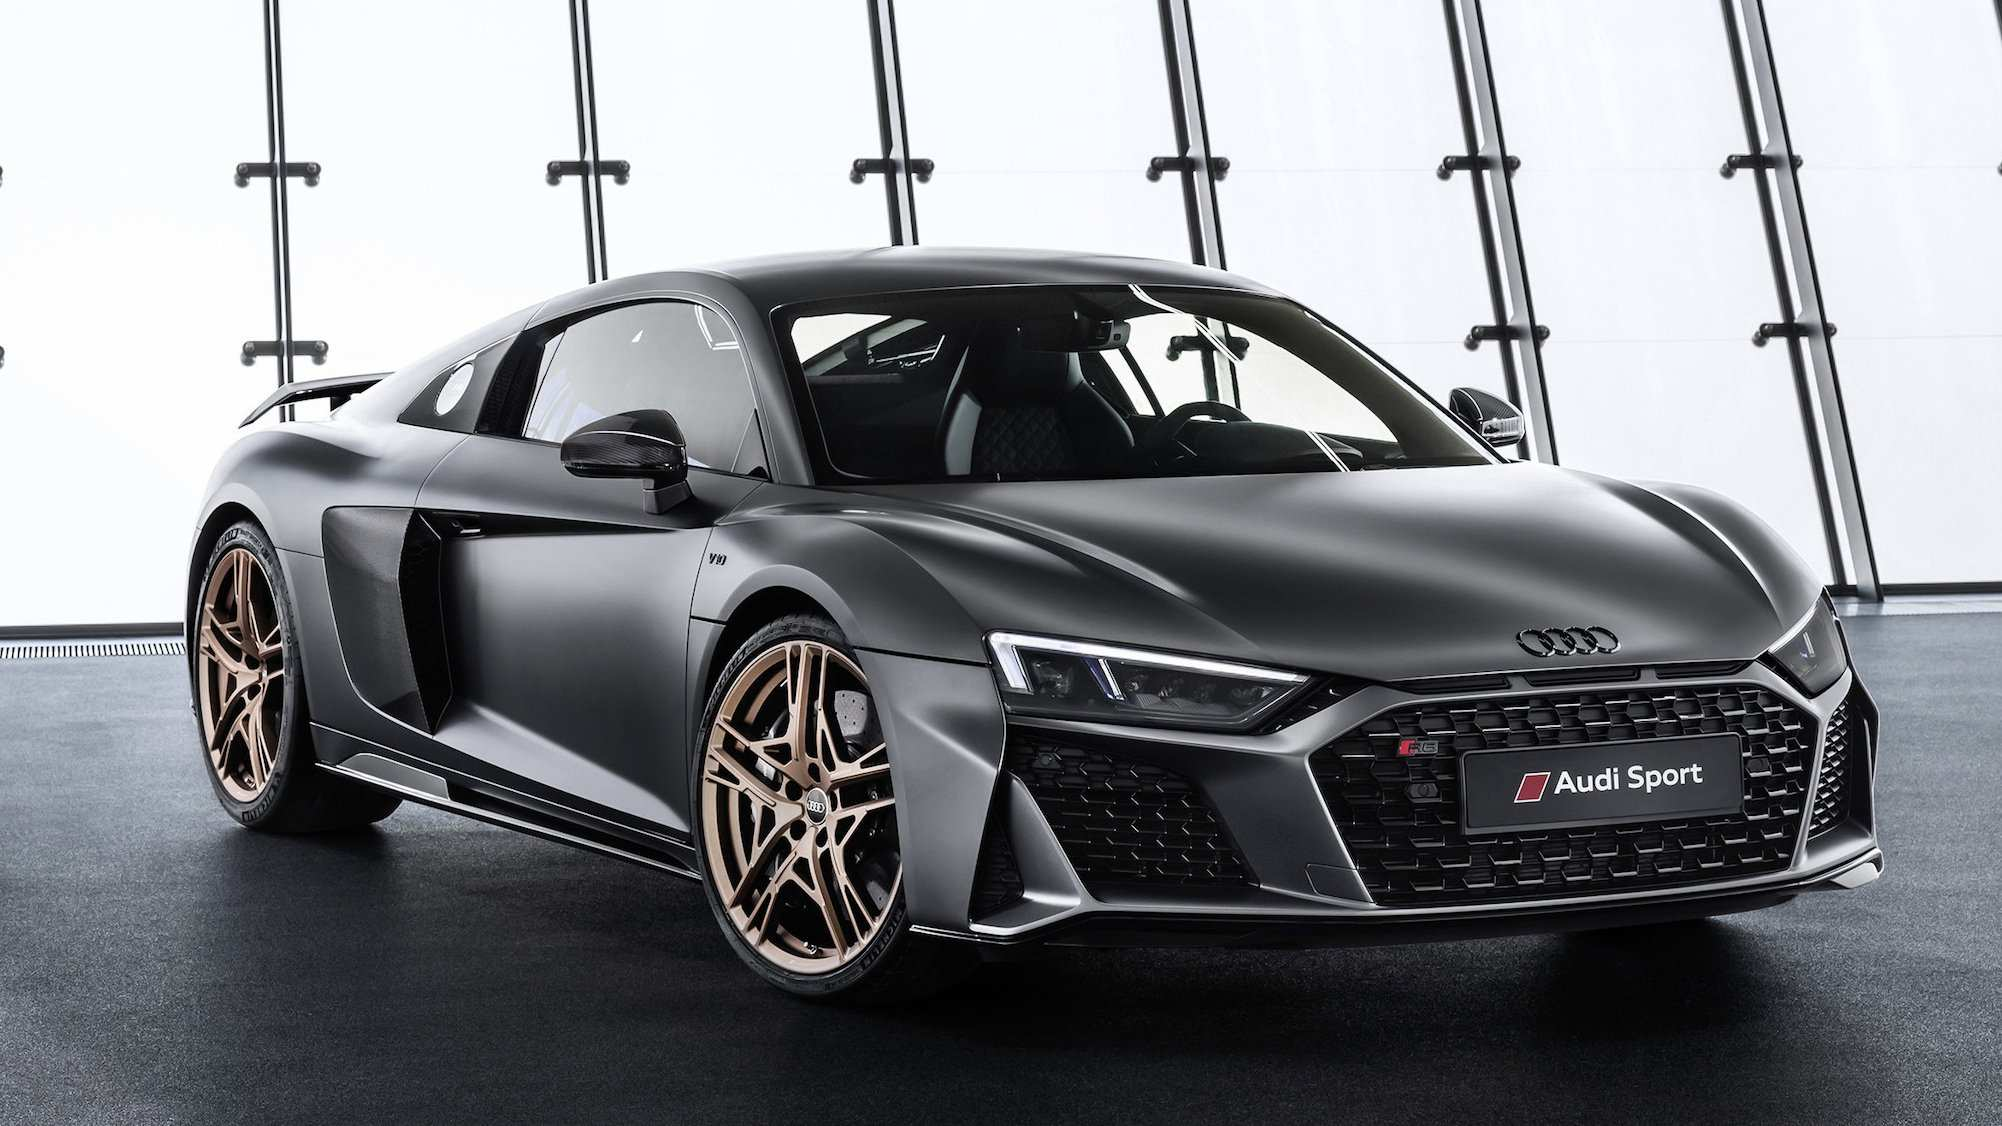 16 The Best 2020 Audi R8 V10 Plus New Model And Performance